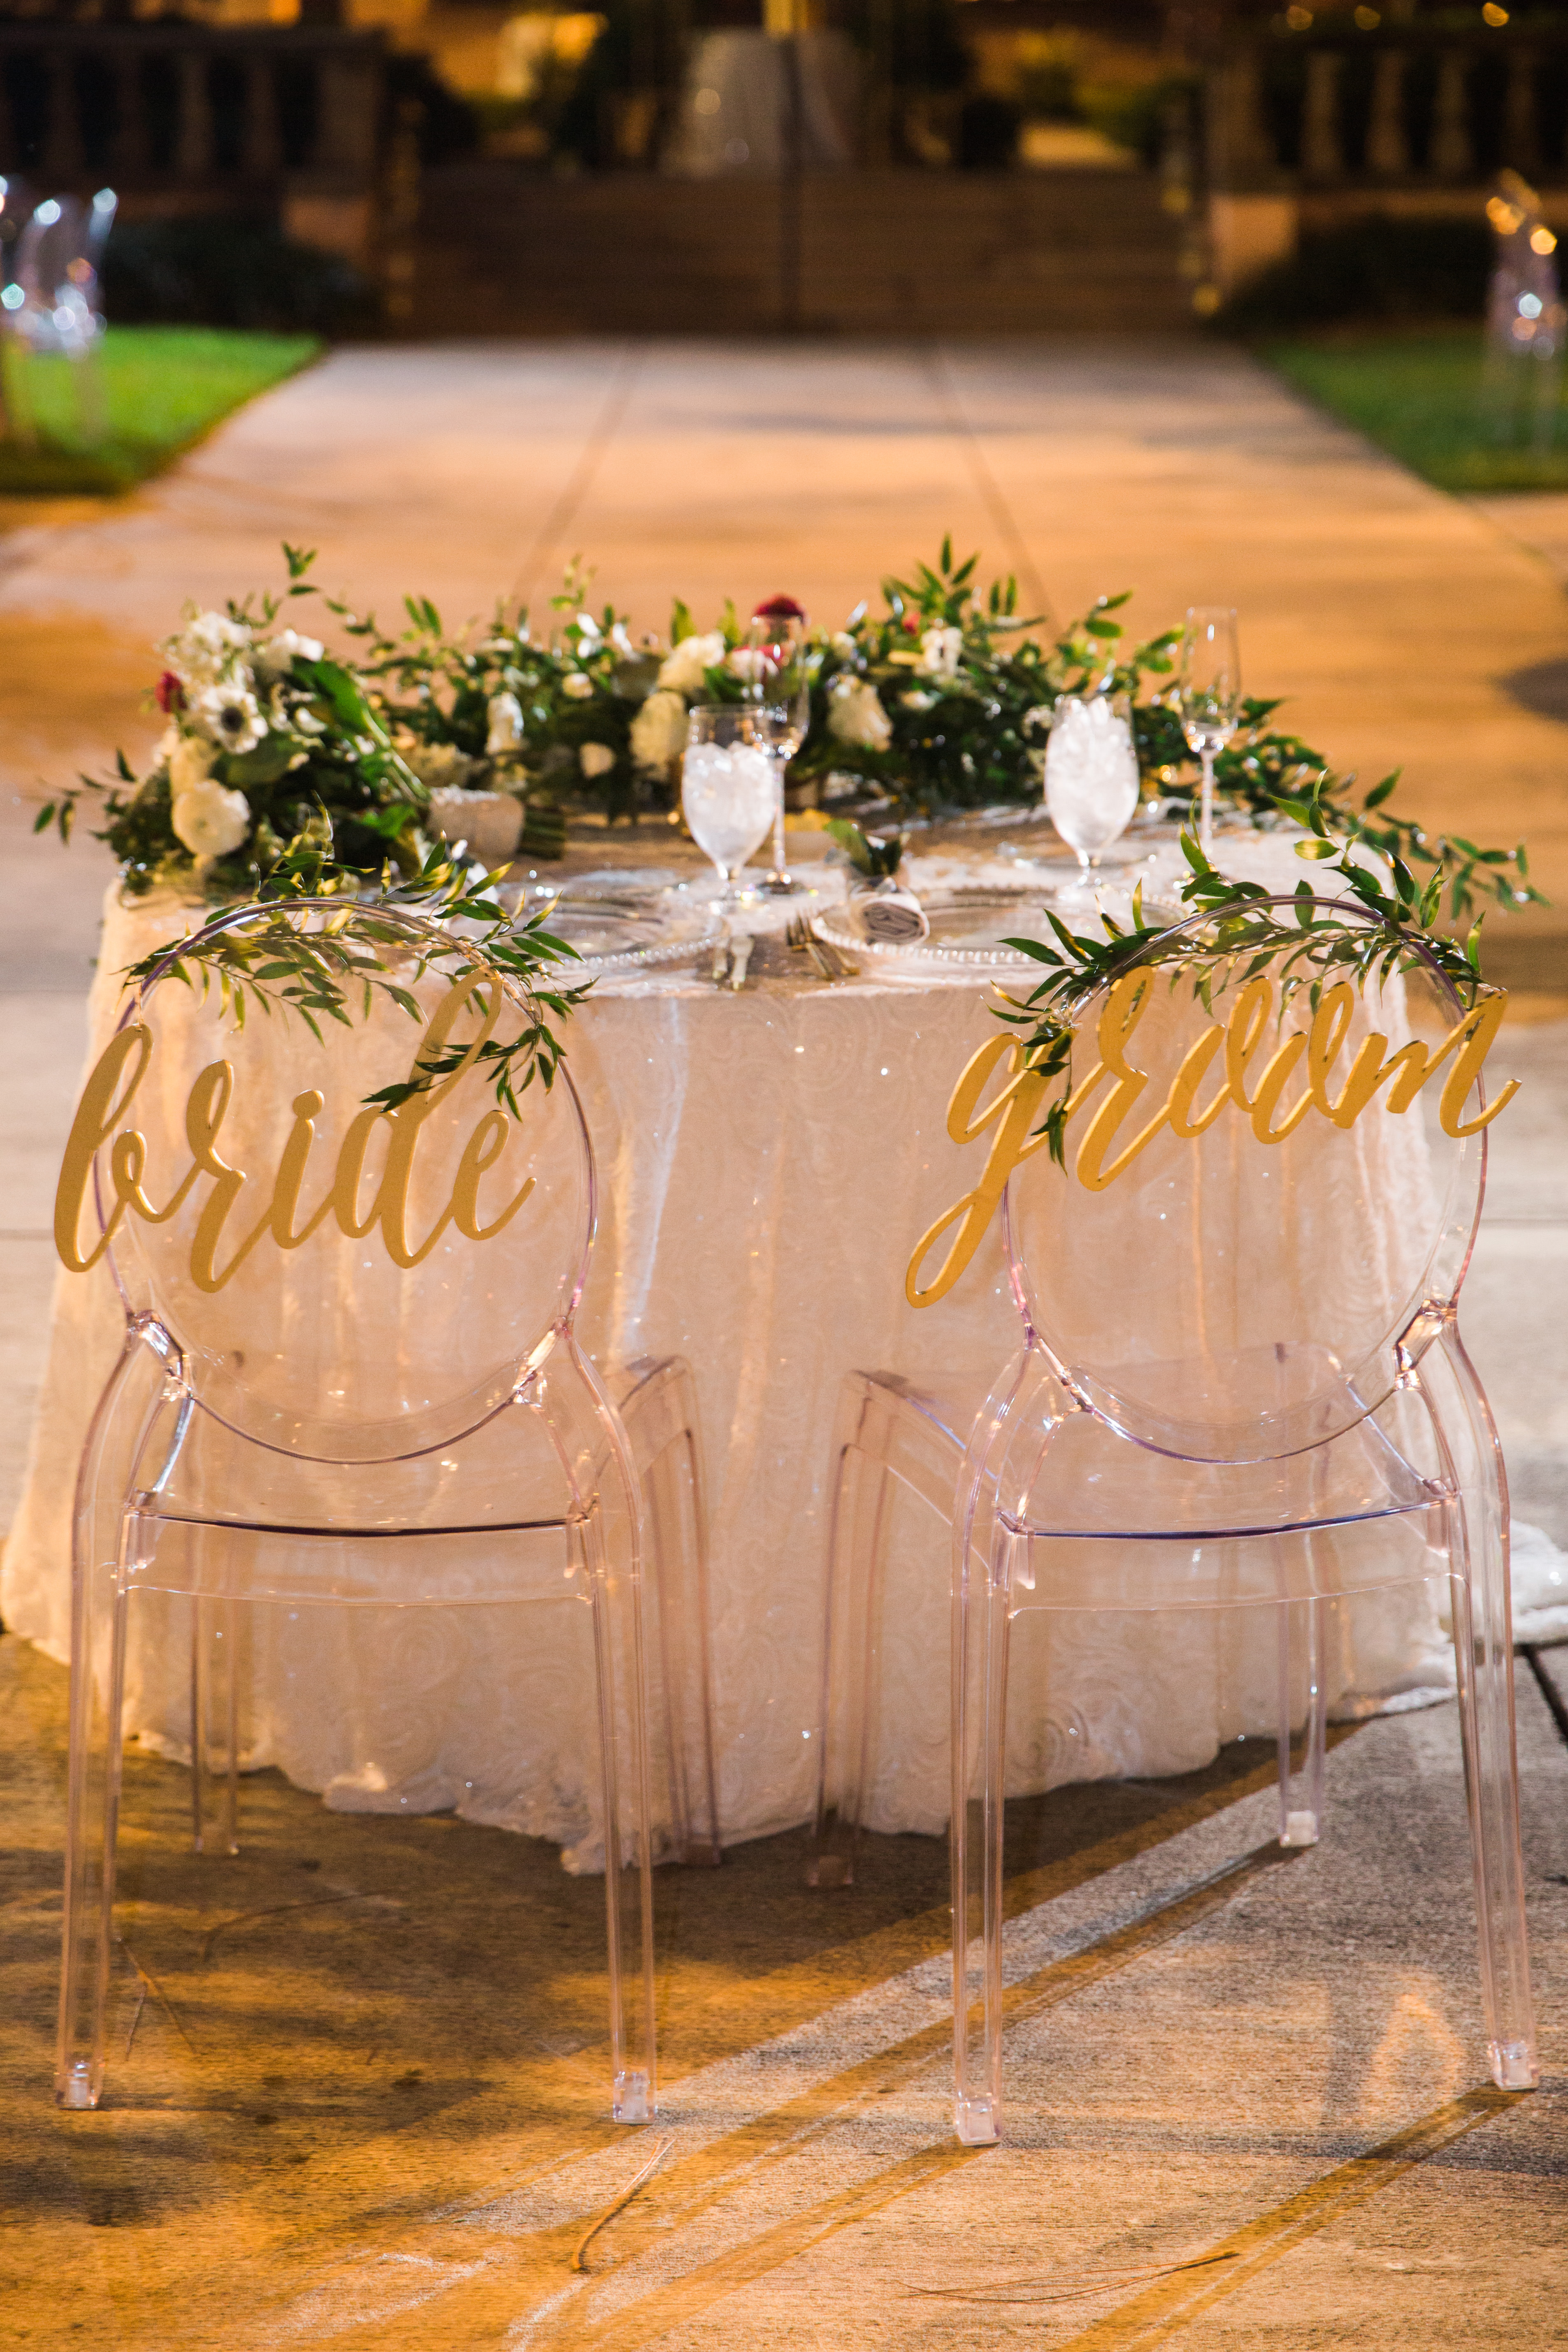 Outdoor Nighttime Garden Courtyard Wedding Reception Decor, Sweetheart Table with Ivory Tablecloth, Greenery Garland with White and Red Florals, Ghost Chairs with Laser Cut Bride and Groom Gold Signs | Tampa Bay Wedding Planner NK Weddings